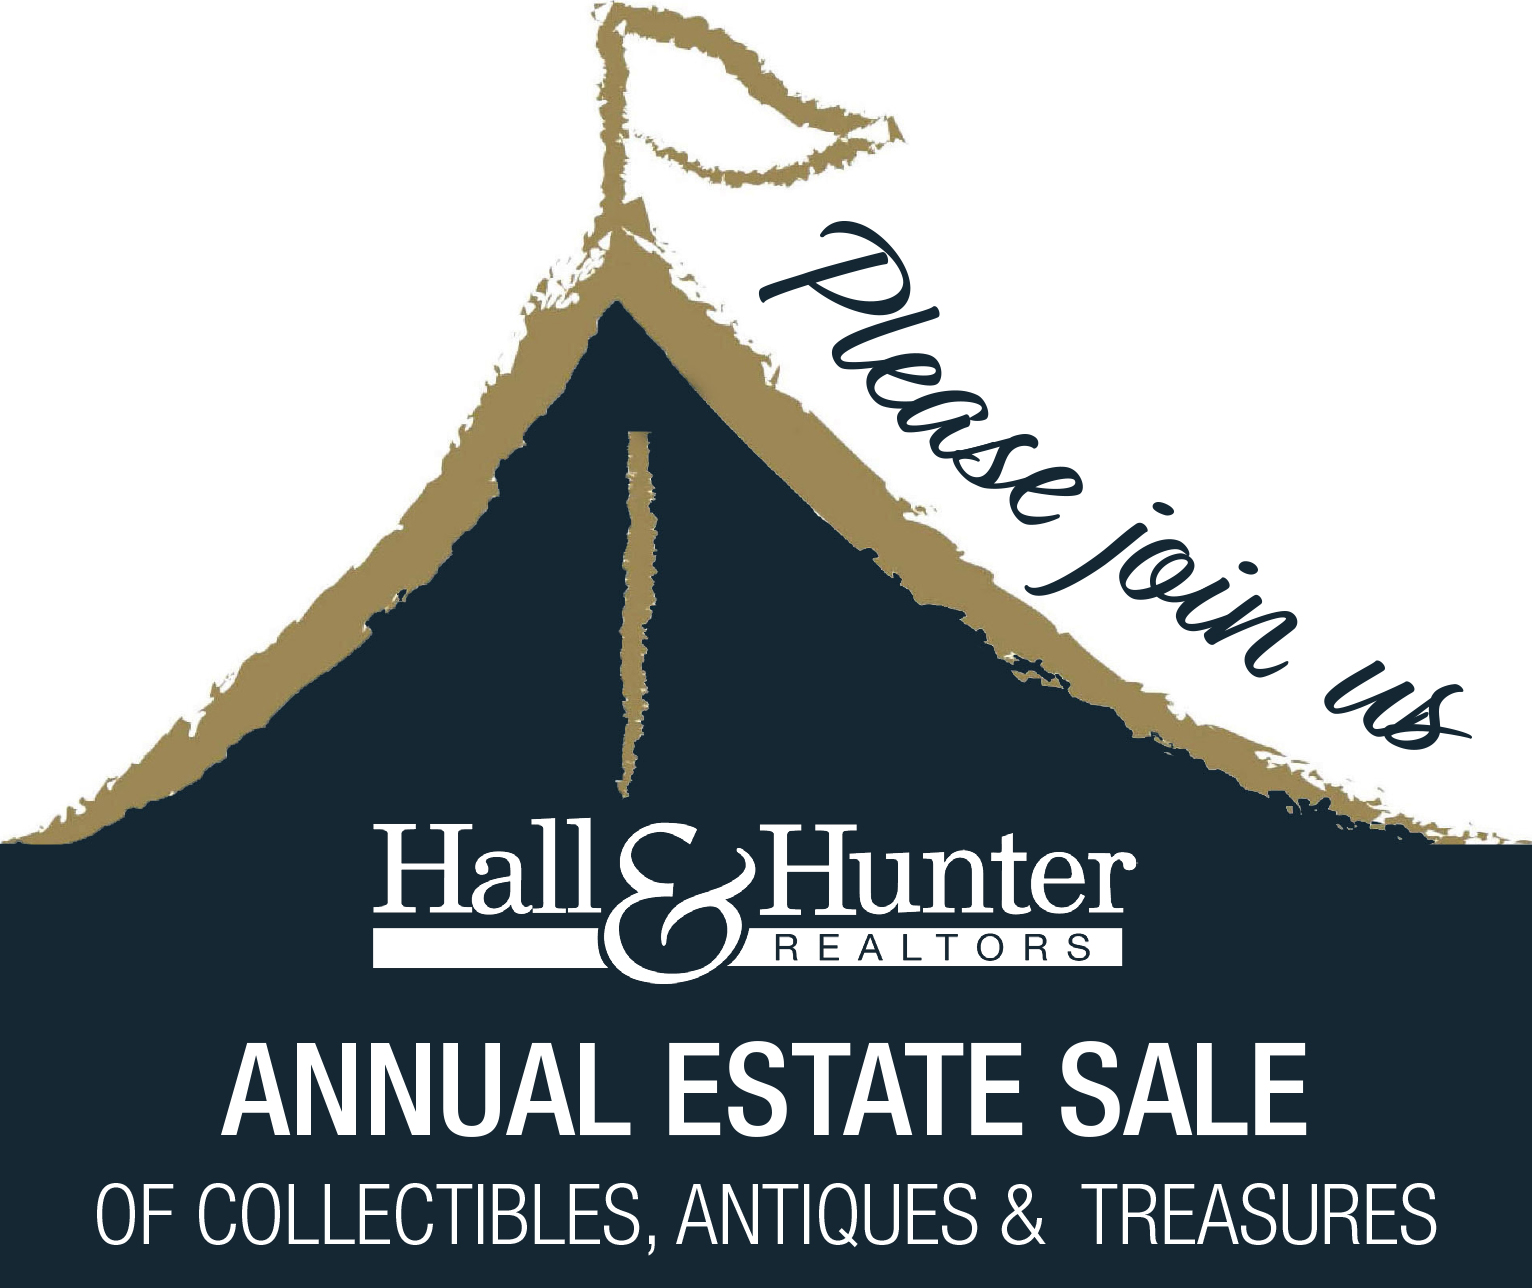 Save the Date for the Hall & Hunter Estate Sale